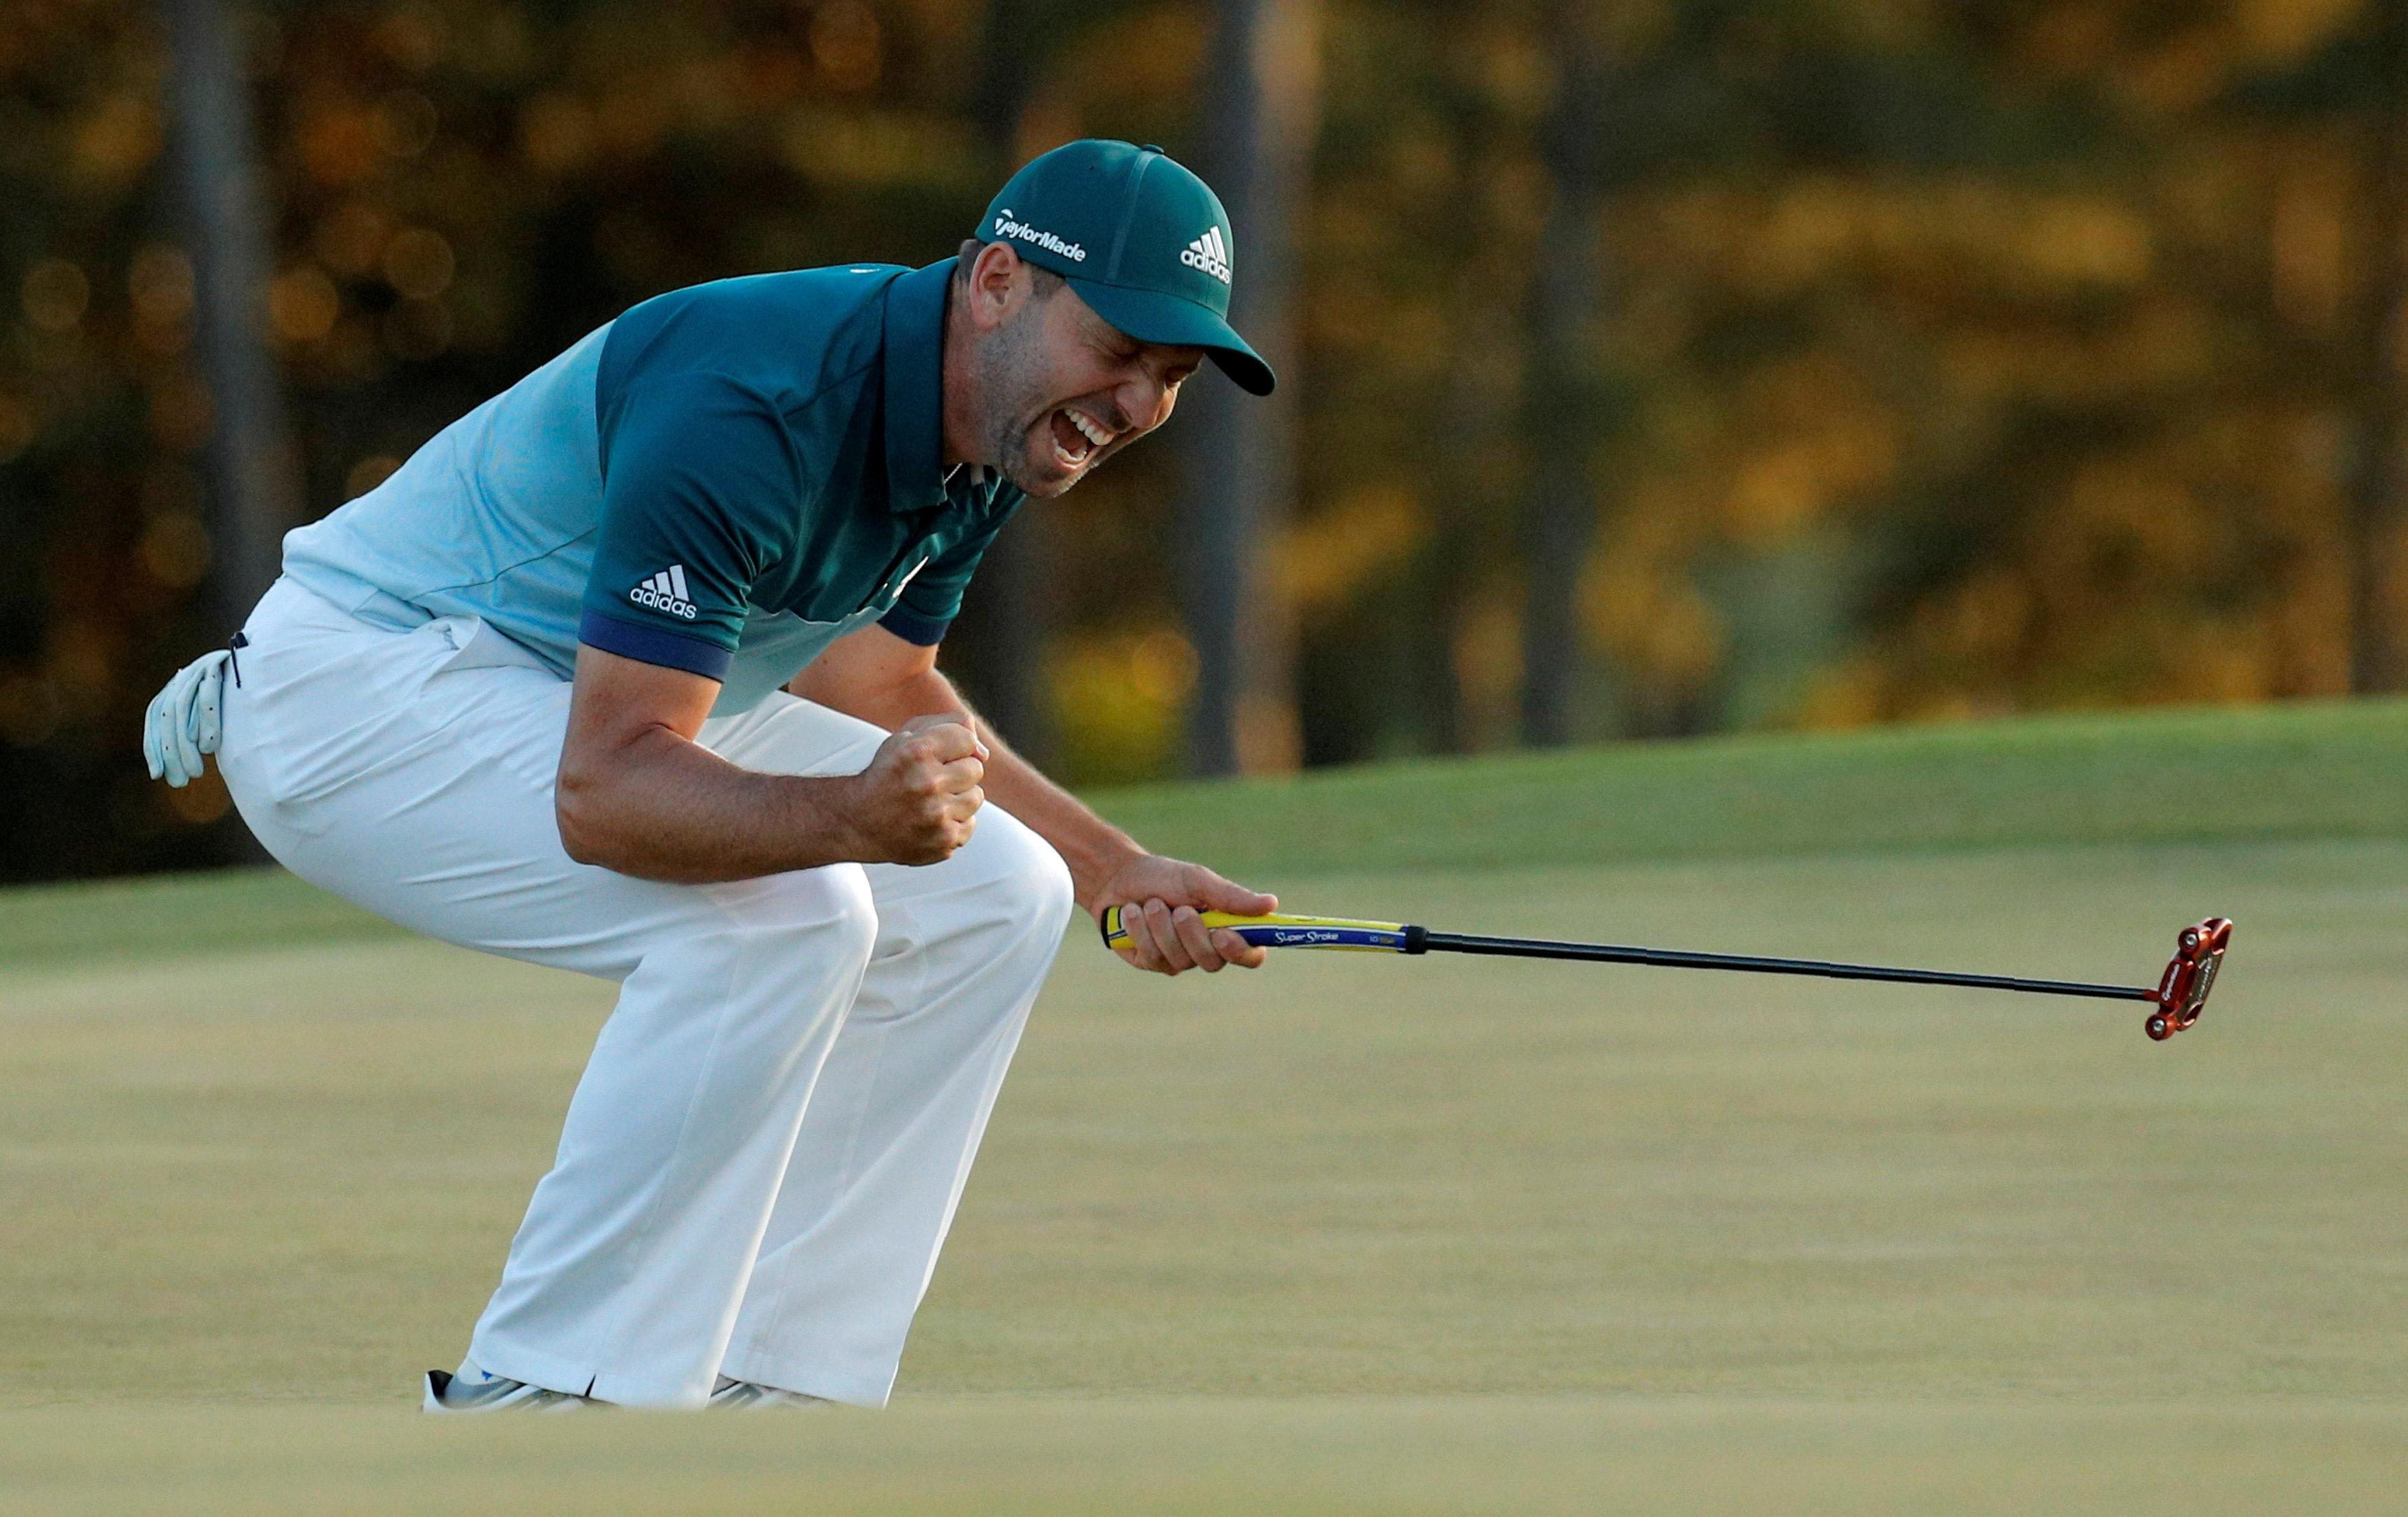 Garcia was delighted when his audacious effort at the 13th hole paid off